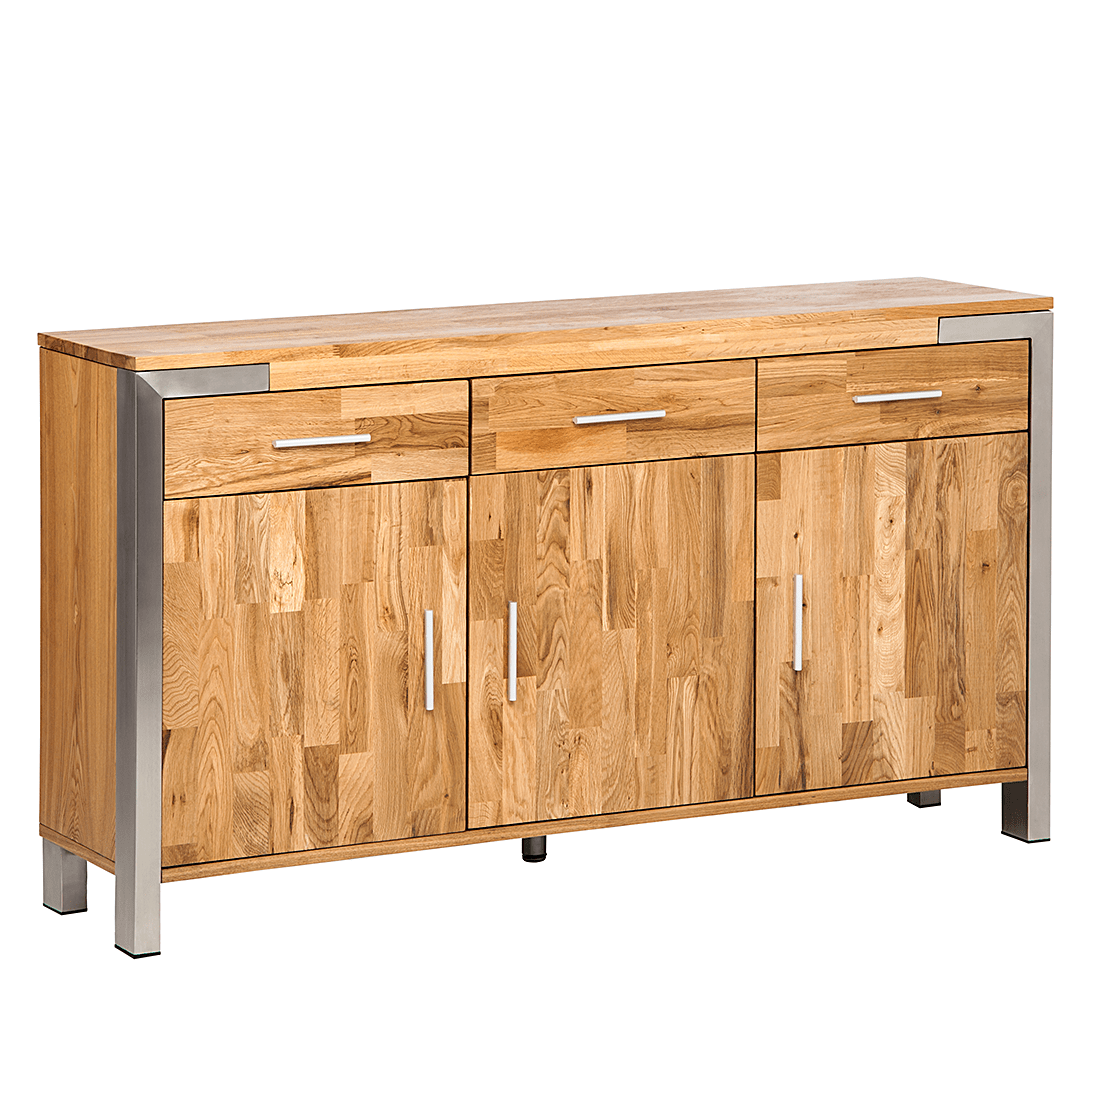 Esszimmer Sideboard Esszimmer Sideboard Esszimmer Sideboard 2017 Zuhause